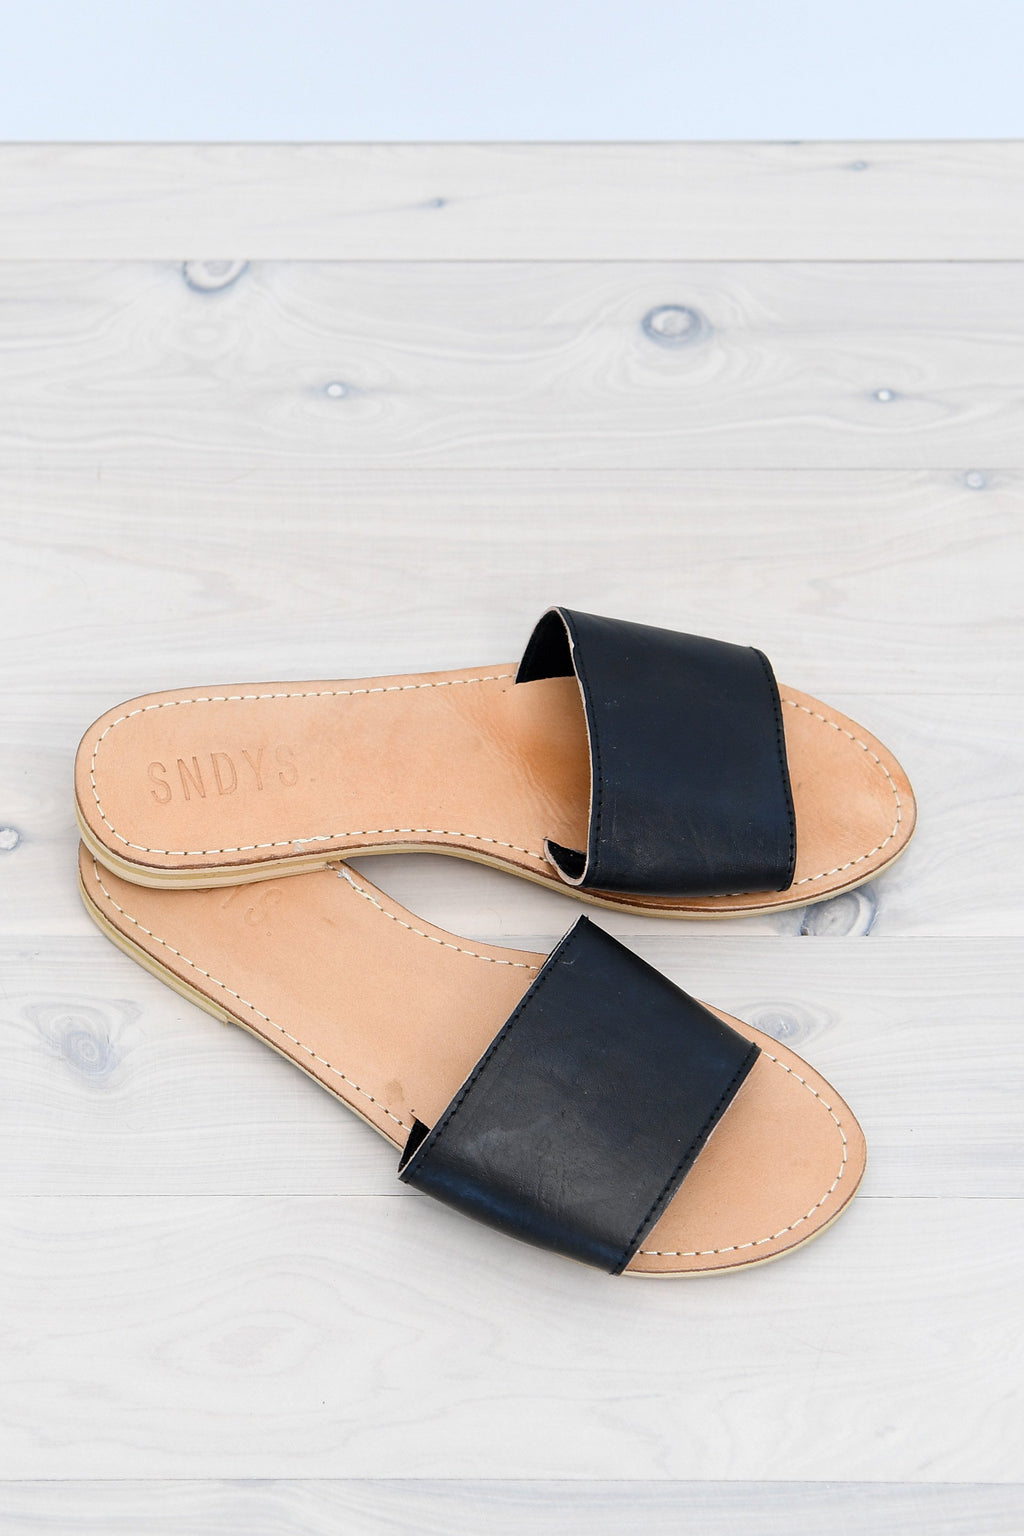 ARIA SLIDES - BLACK